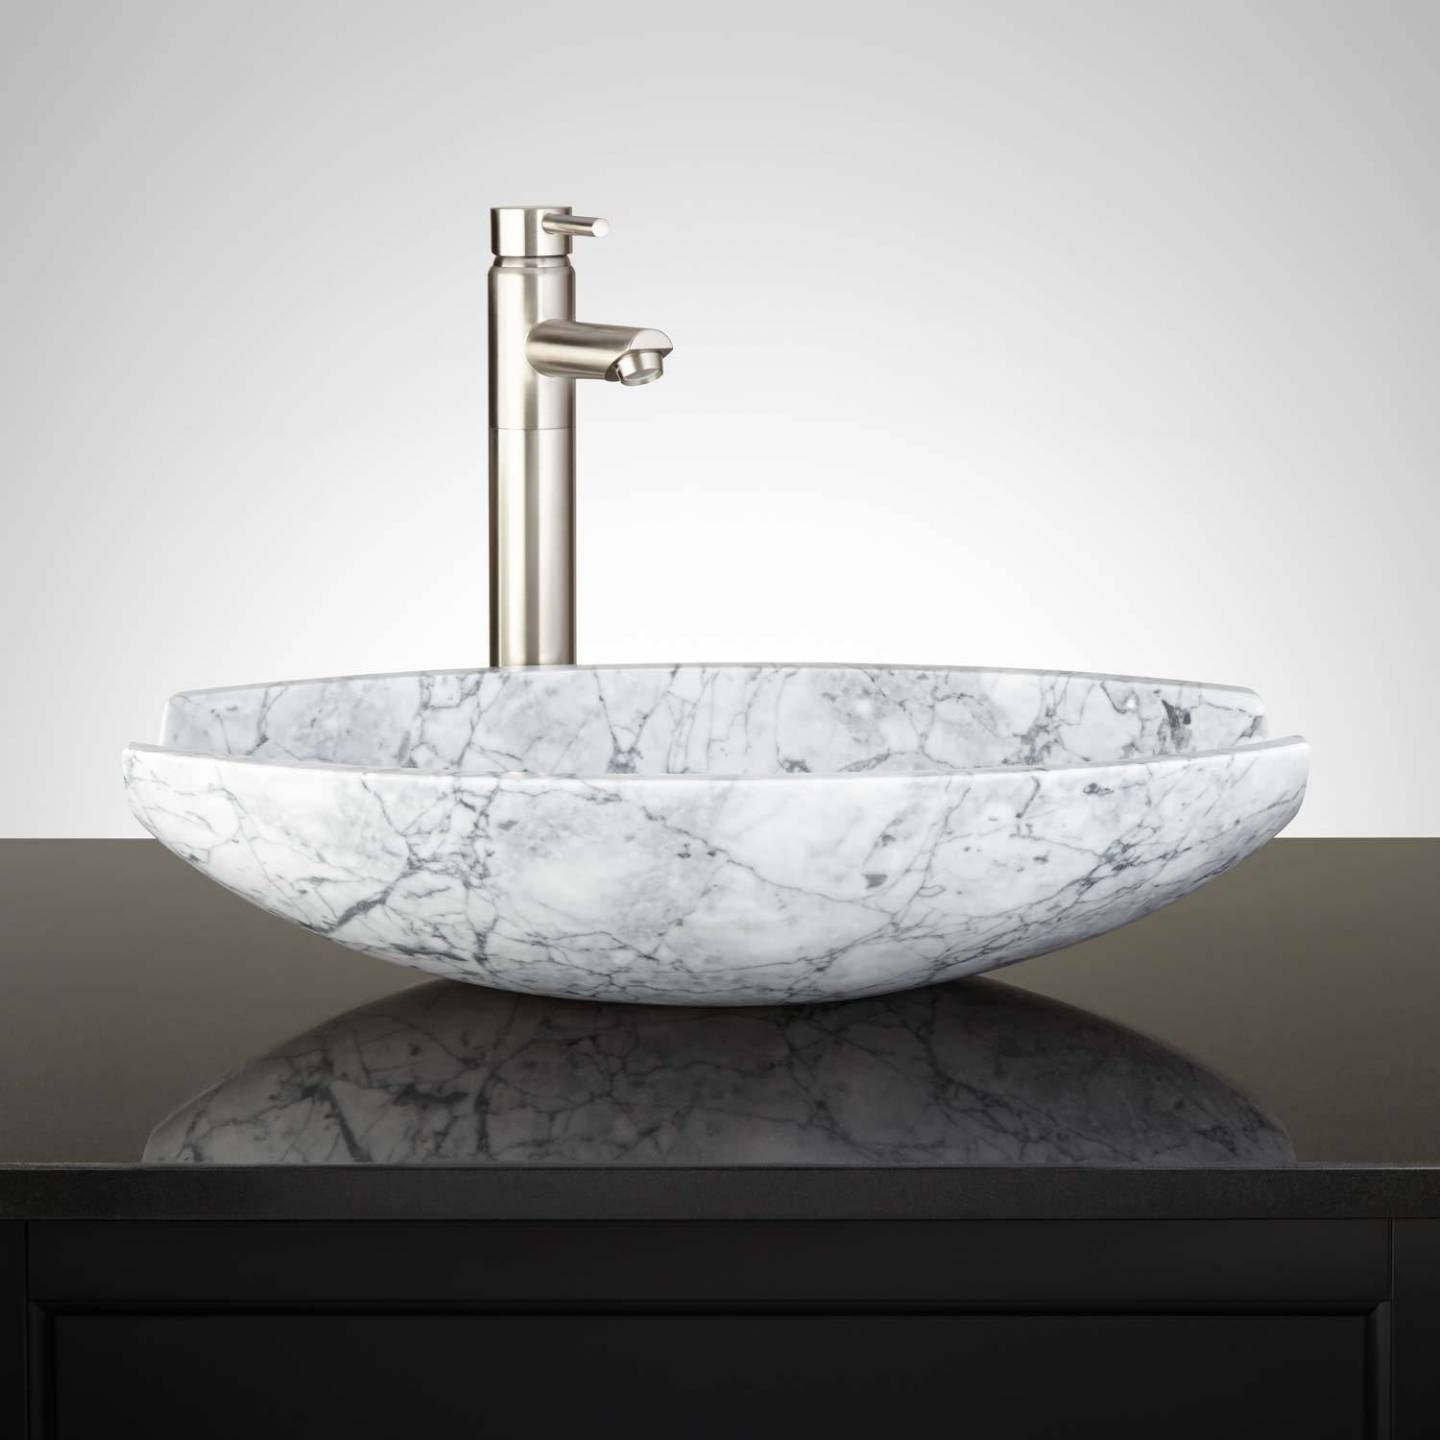 gallery/468260-oval-white-marble-vessel-sink